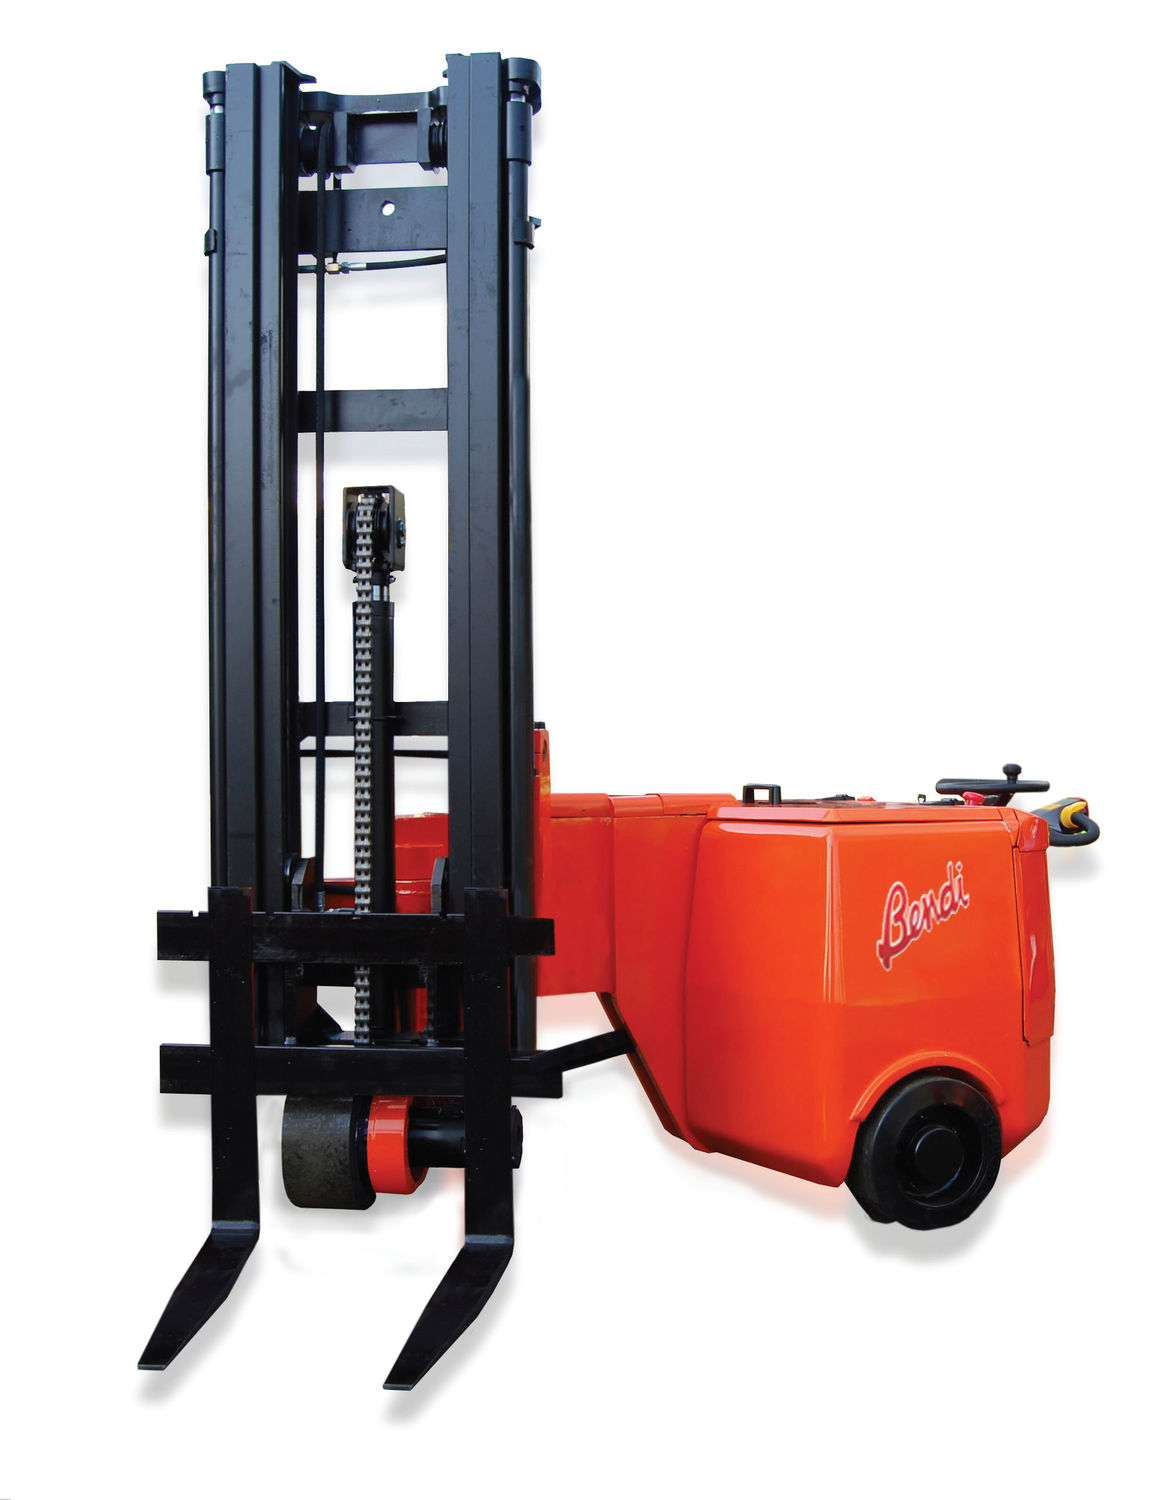 Electric Forklift Walk Behind For Very Narrow Aisles Handling